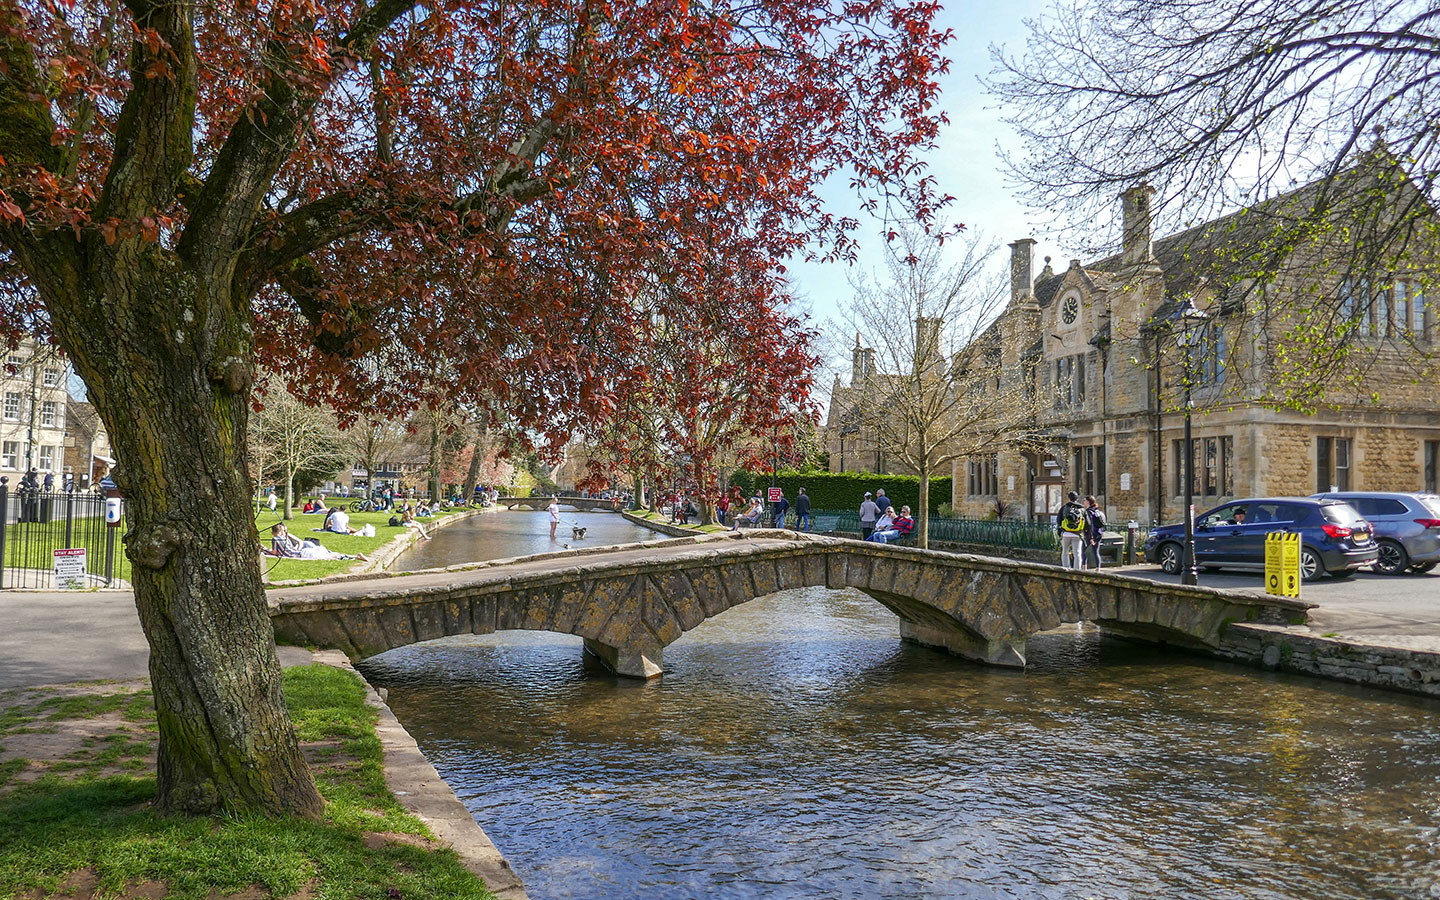 The River Windrush in Bourton-on-the-Water